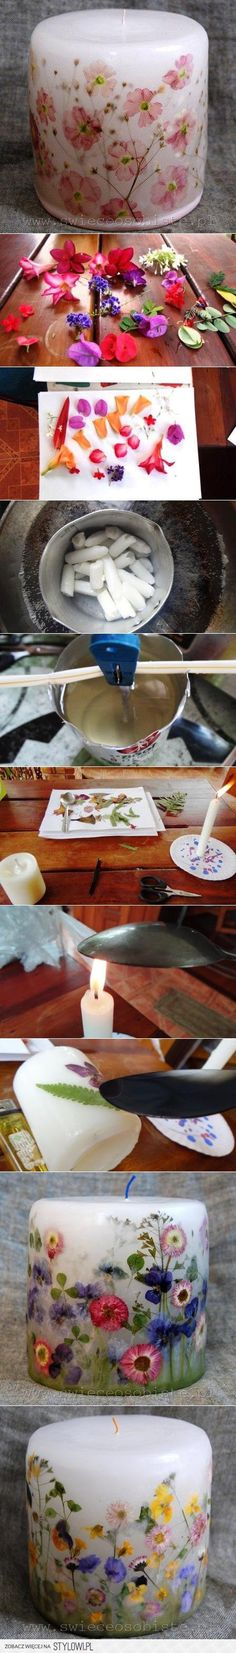 DIY Candle Flower